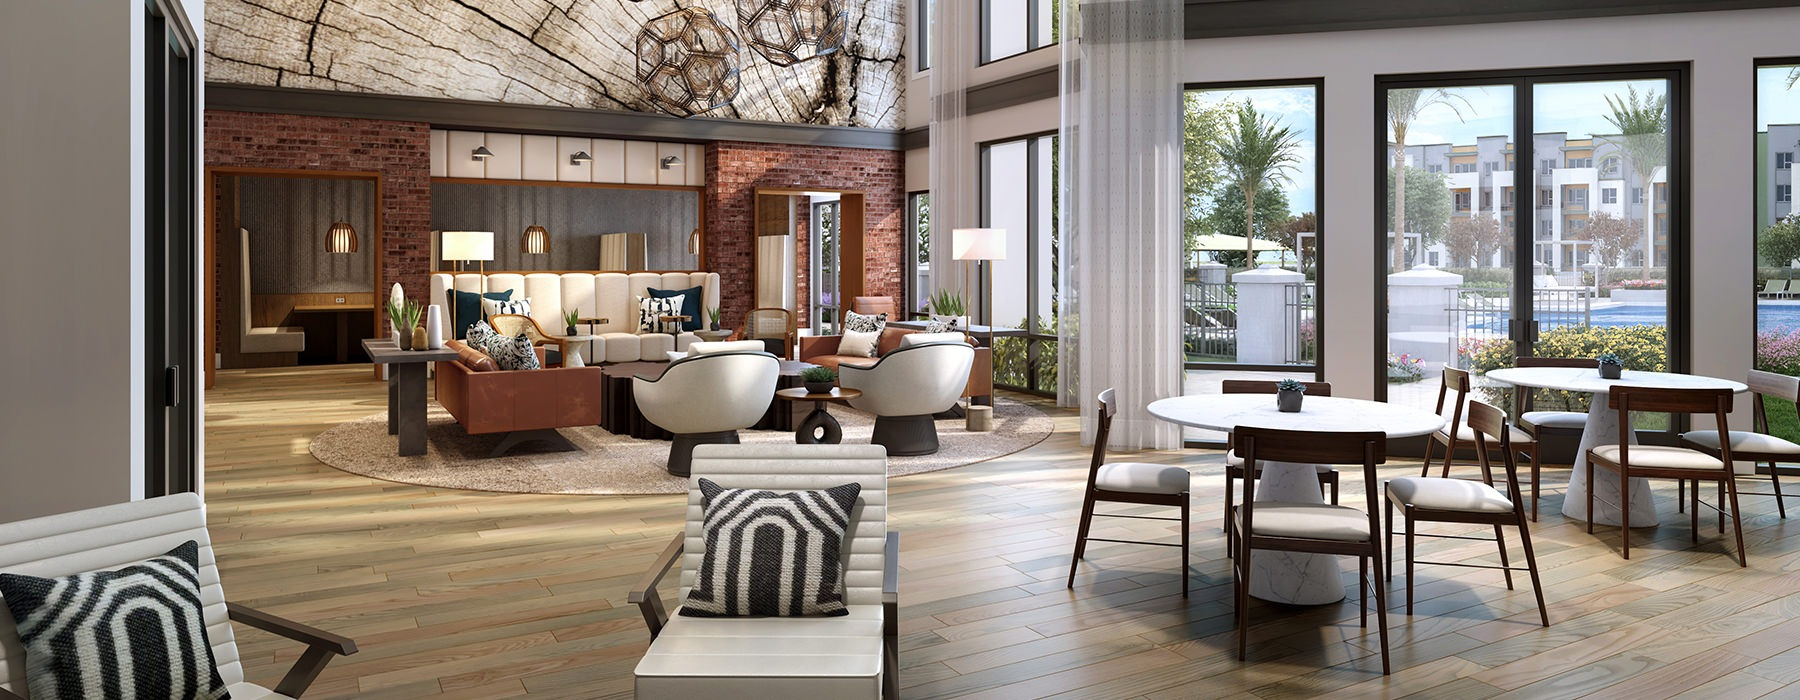 Modern Common Space With Ample Seating At Legacy Universal Apartments In Orlando, FL